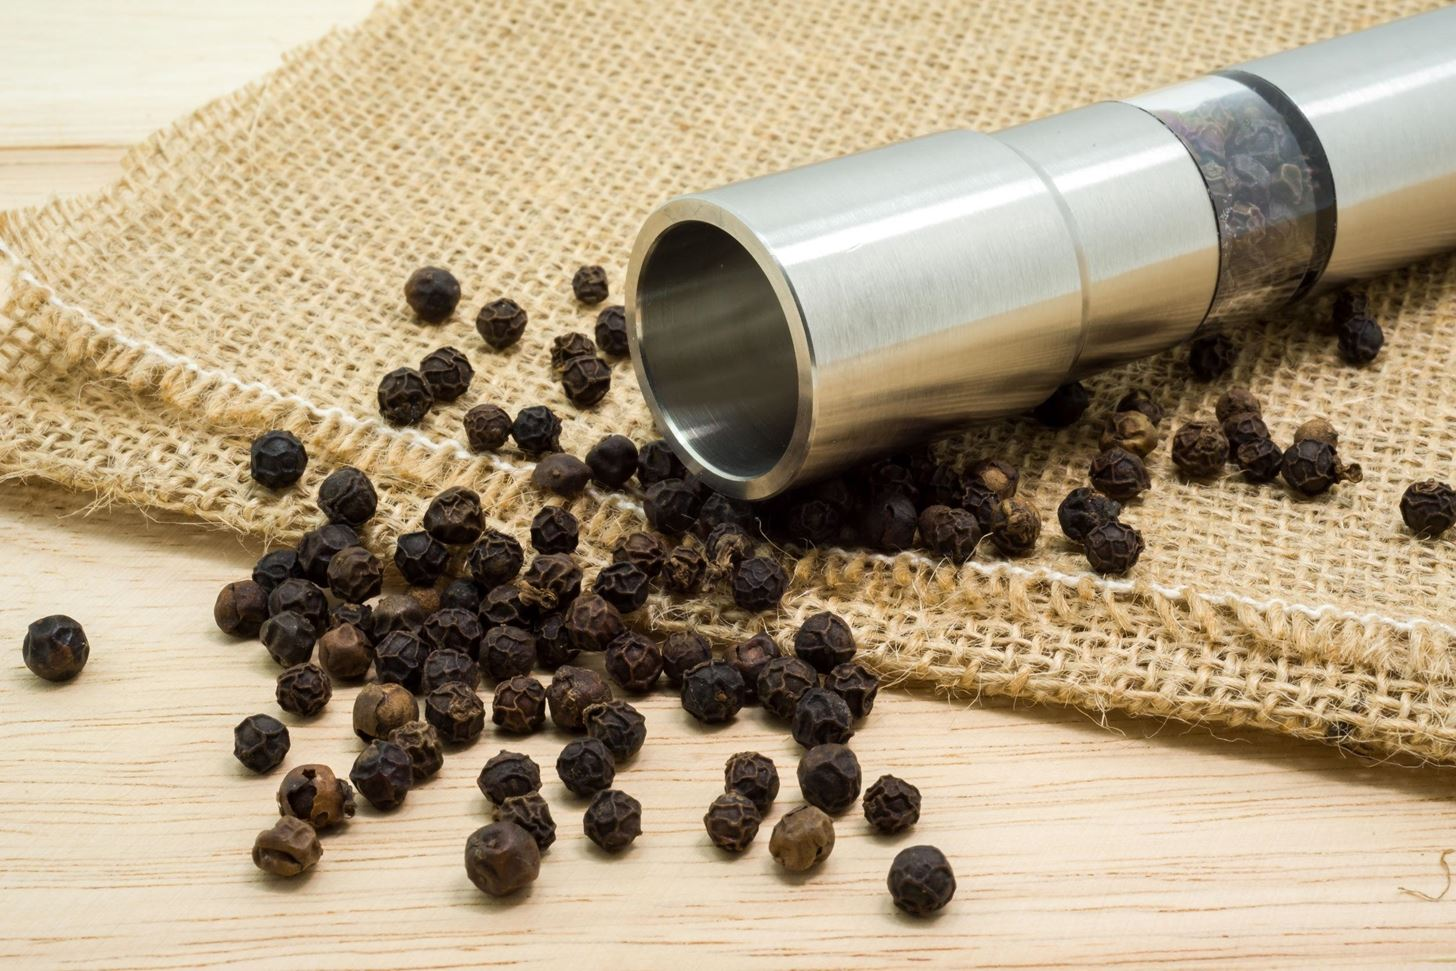 Stop Using Black Peppercorn—Your Taste Buds Will Thank You